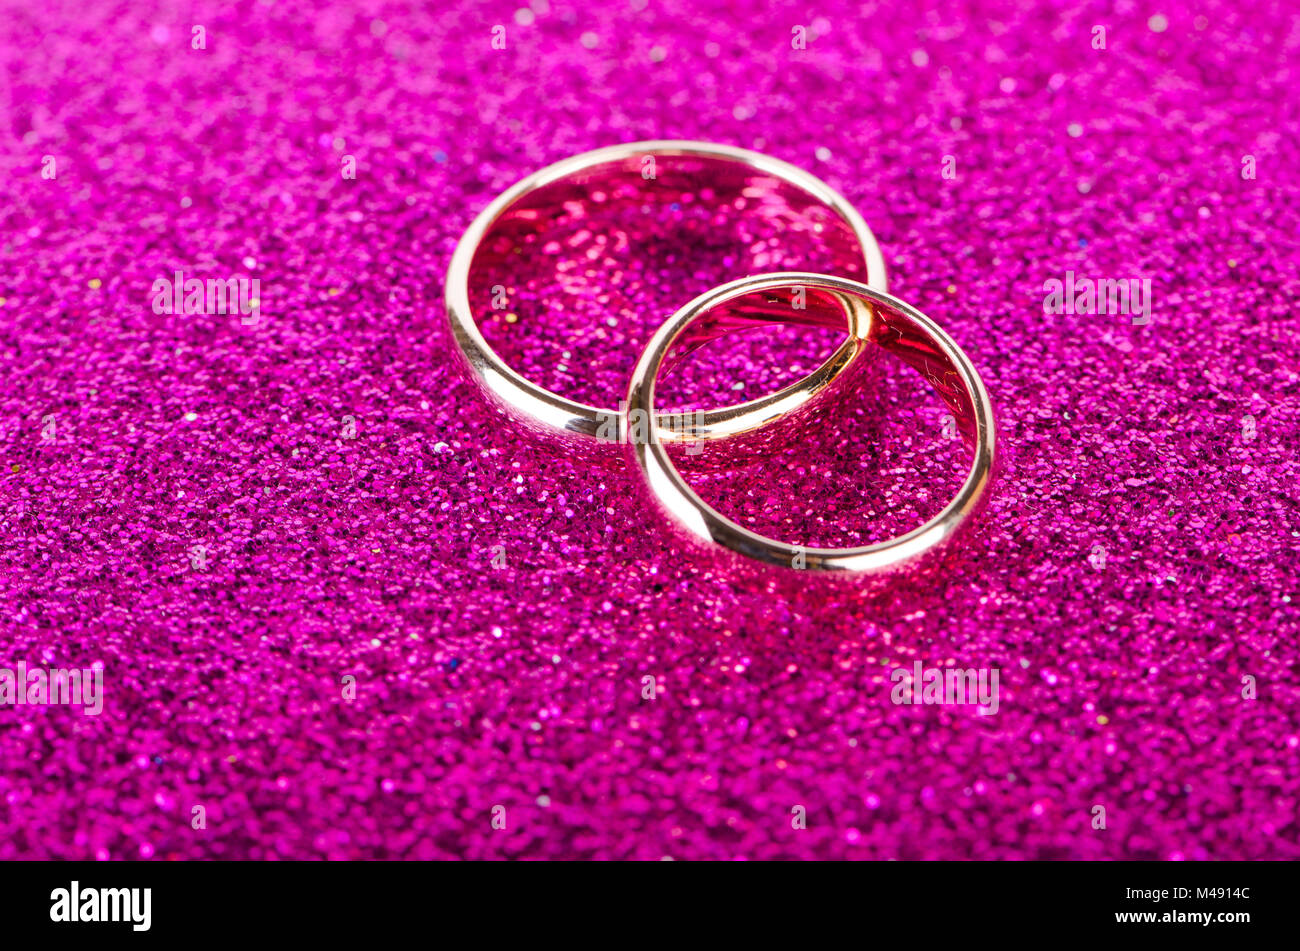 Wedding Rings In Romantic Concept Stock Photos & Wedding Rings In ...